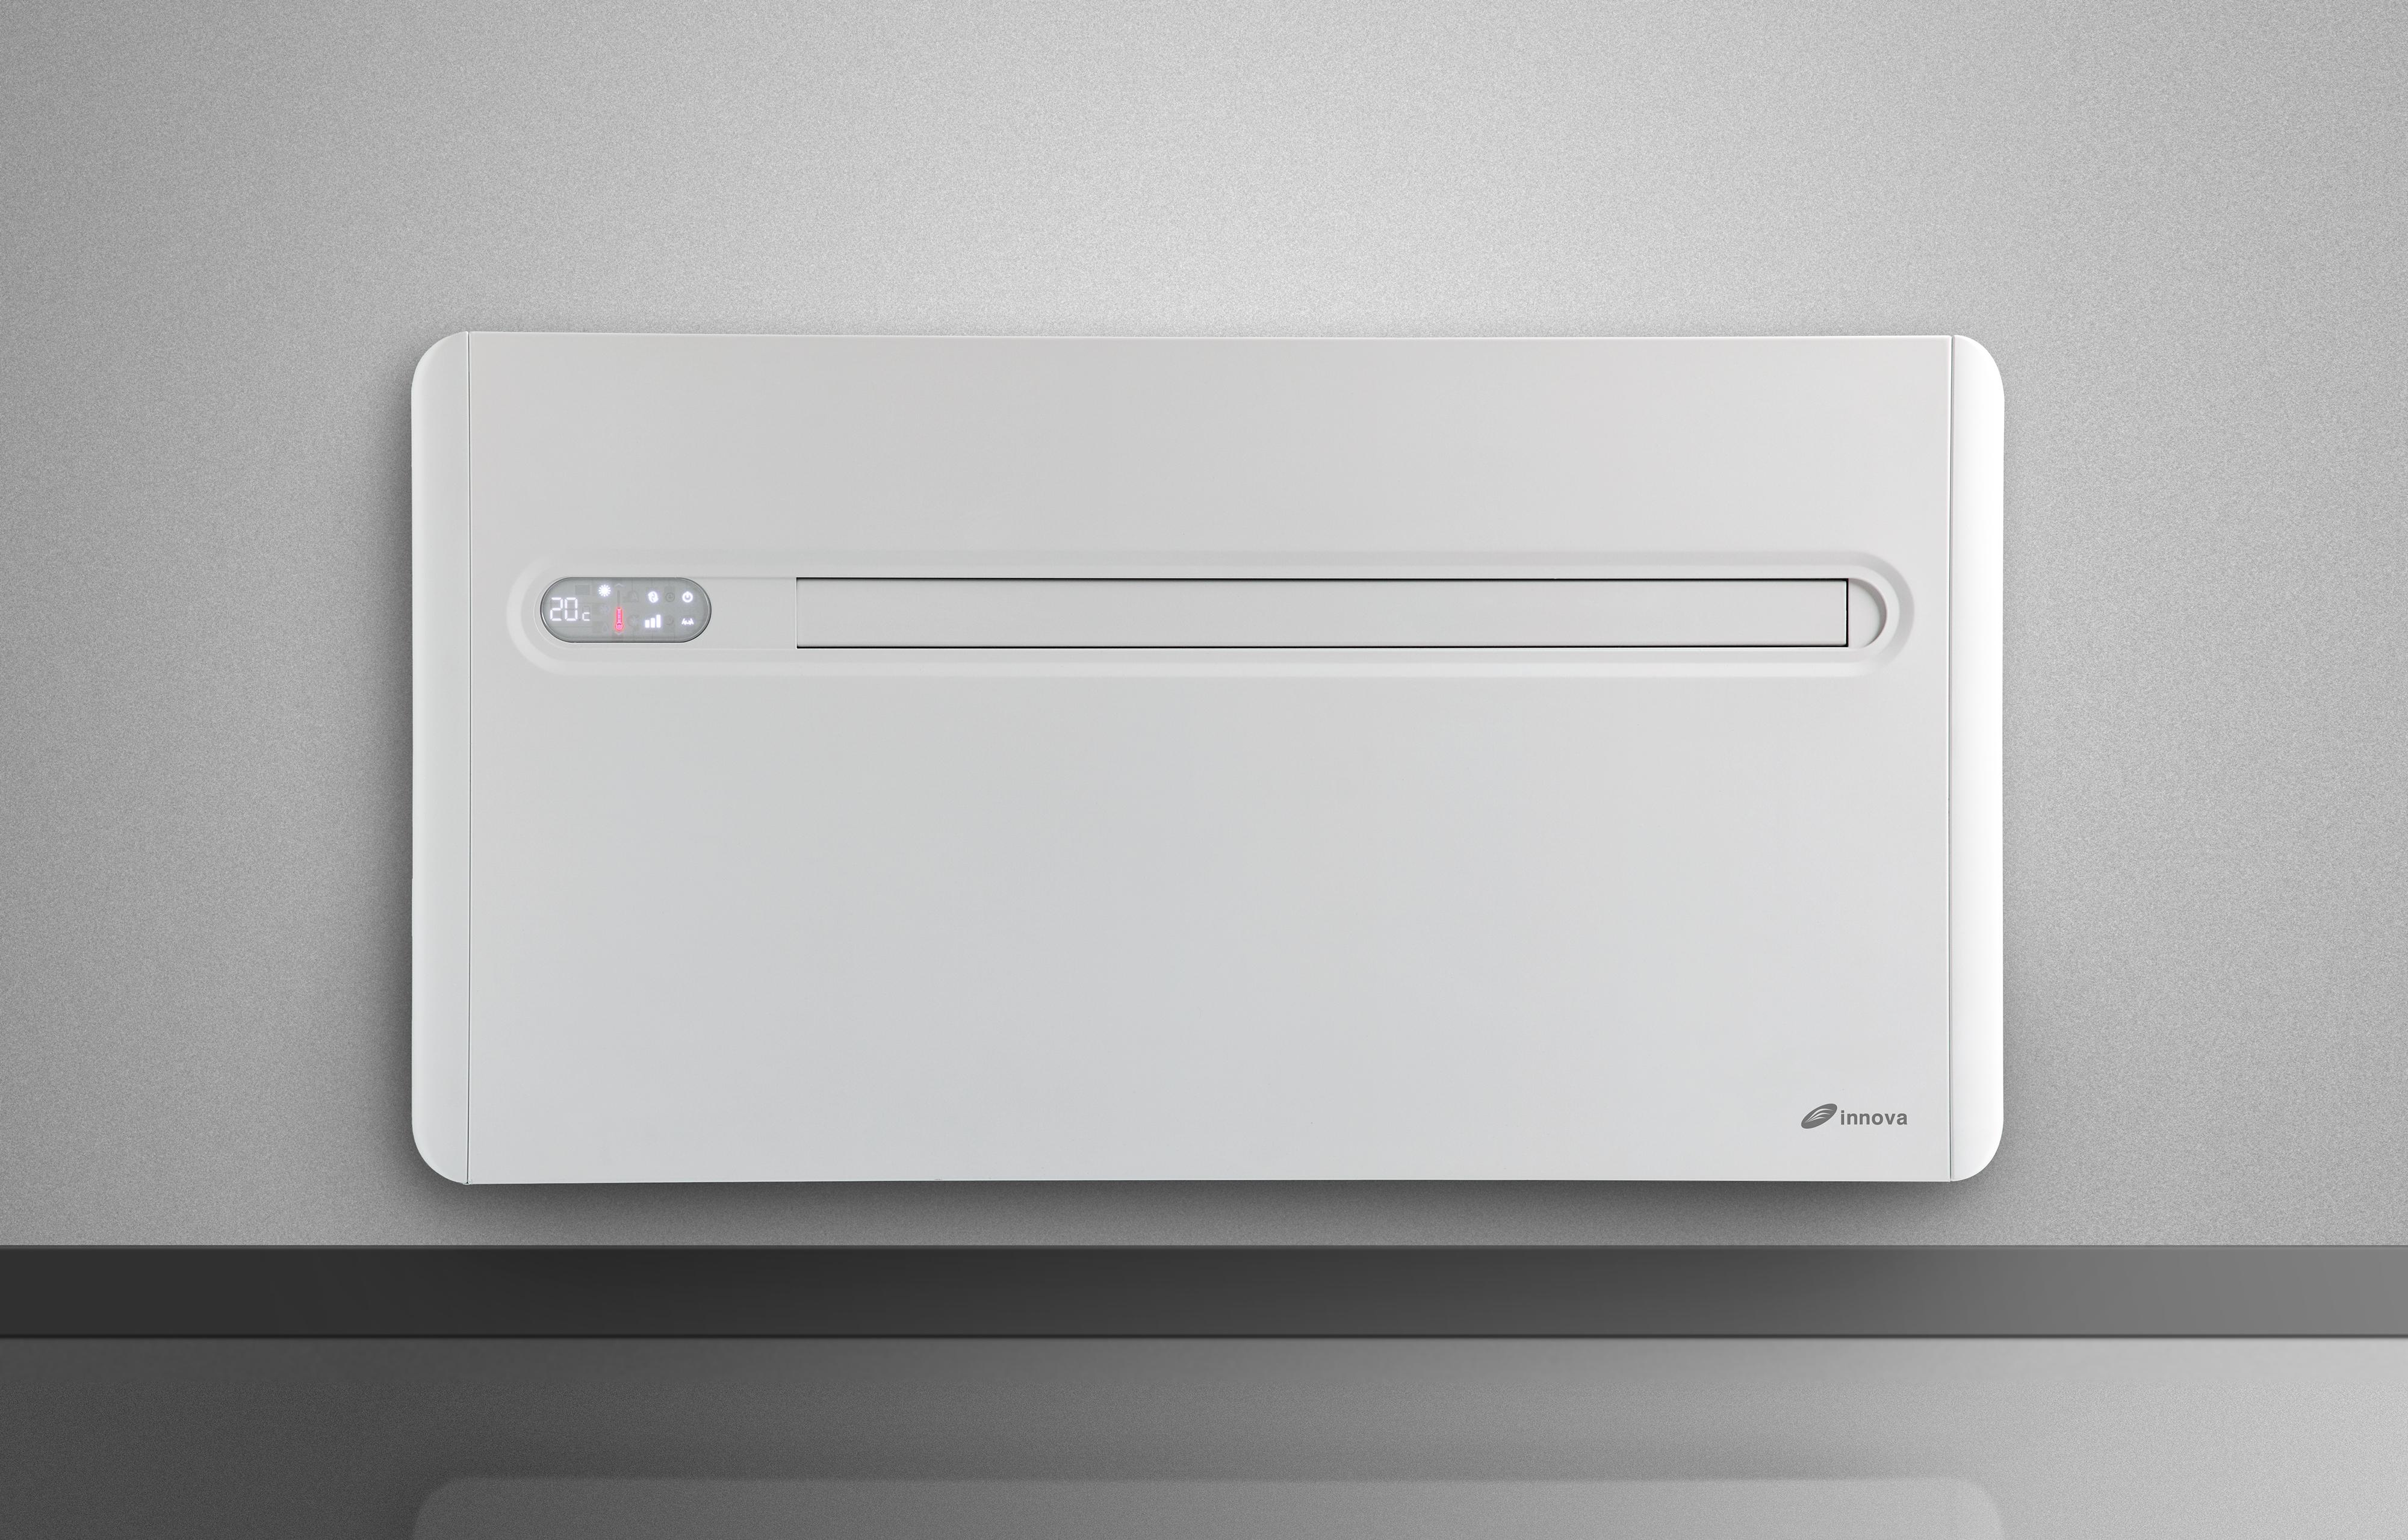 Powrmatic Vision 2 3 All In One 2 3kw Dc Inverter Air